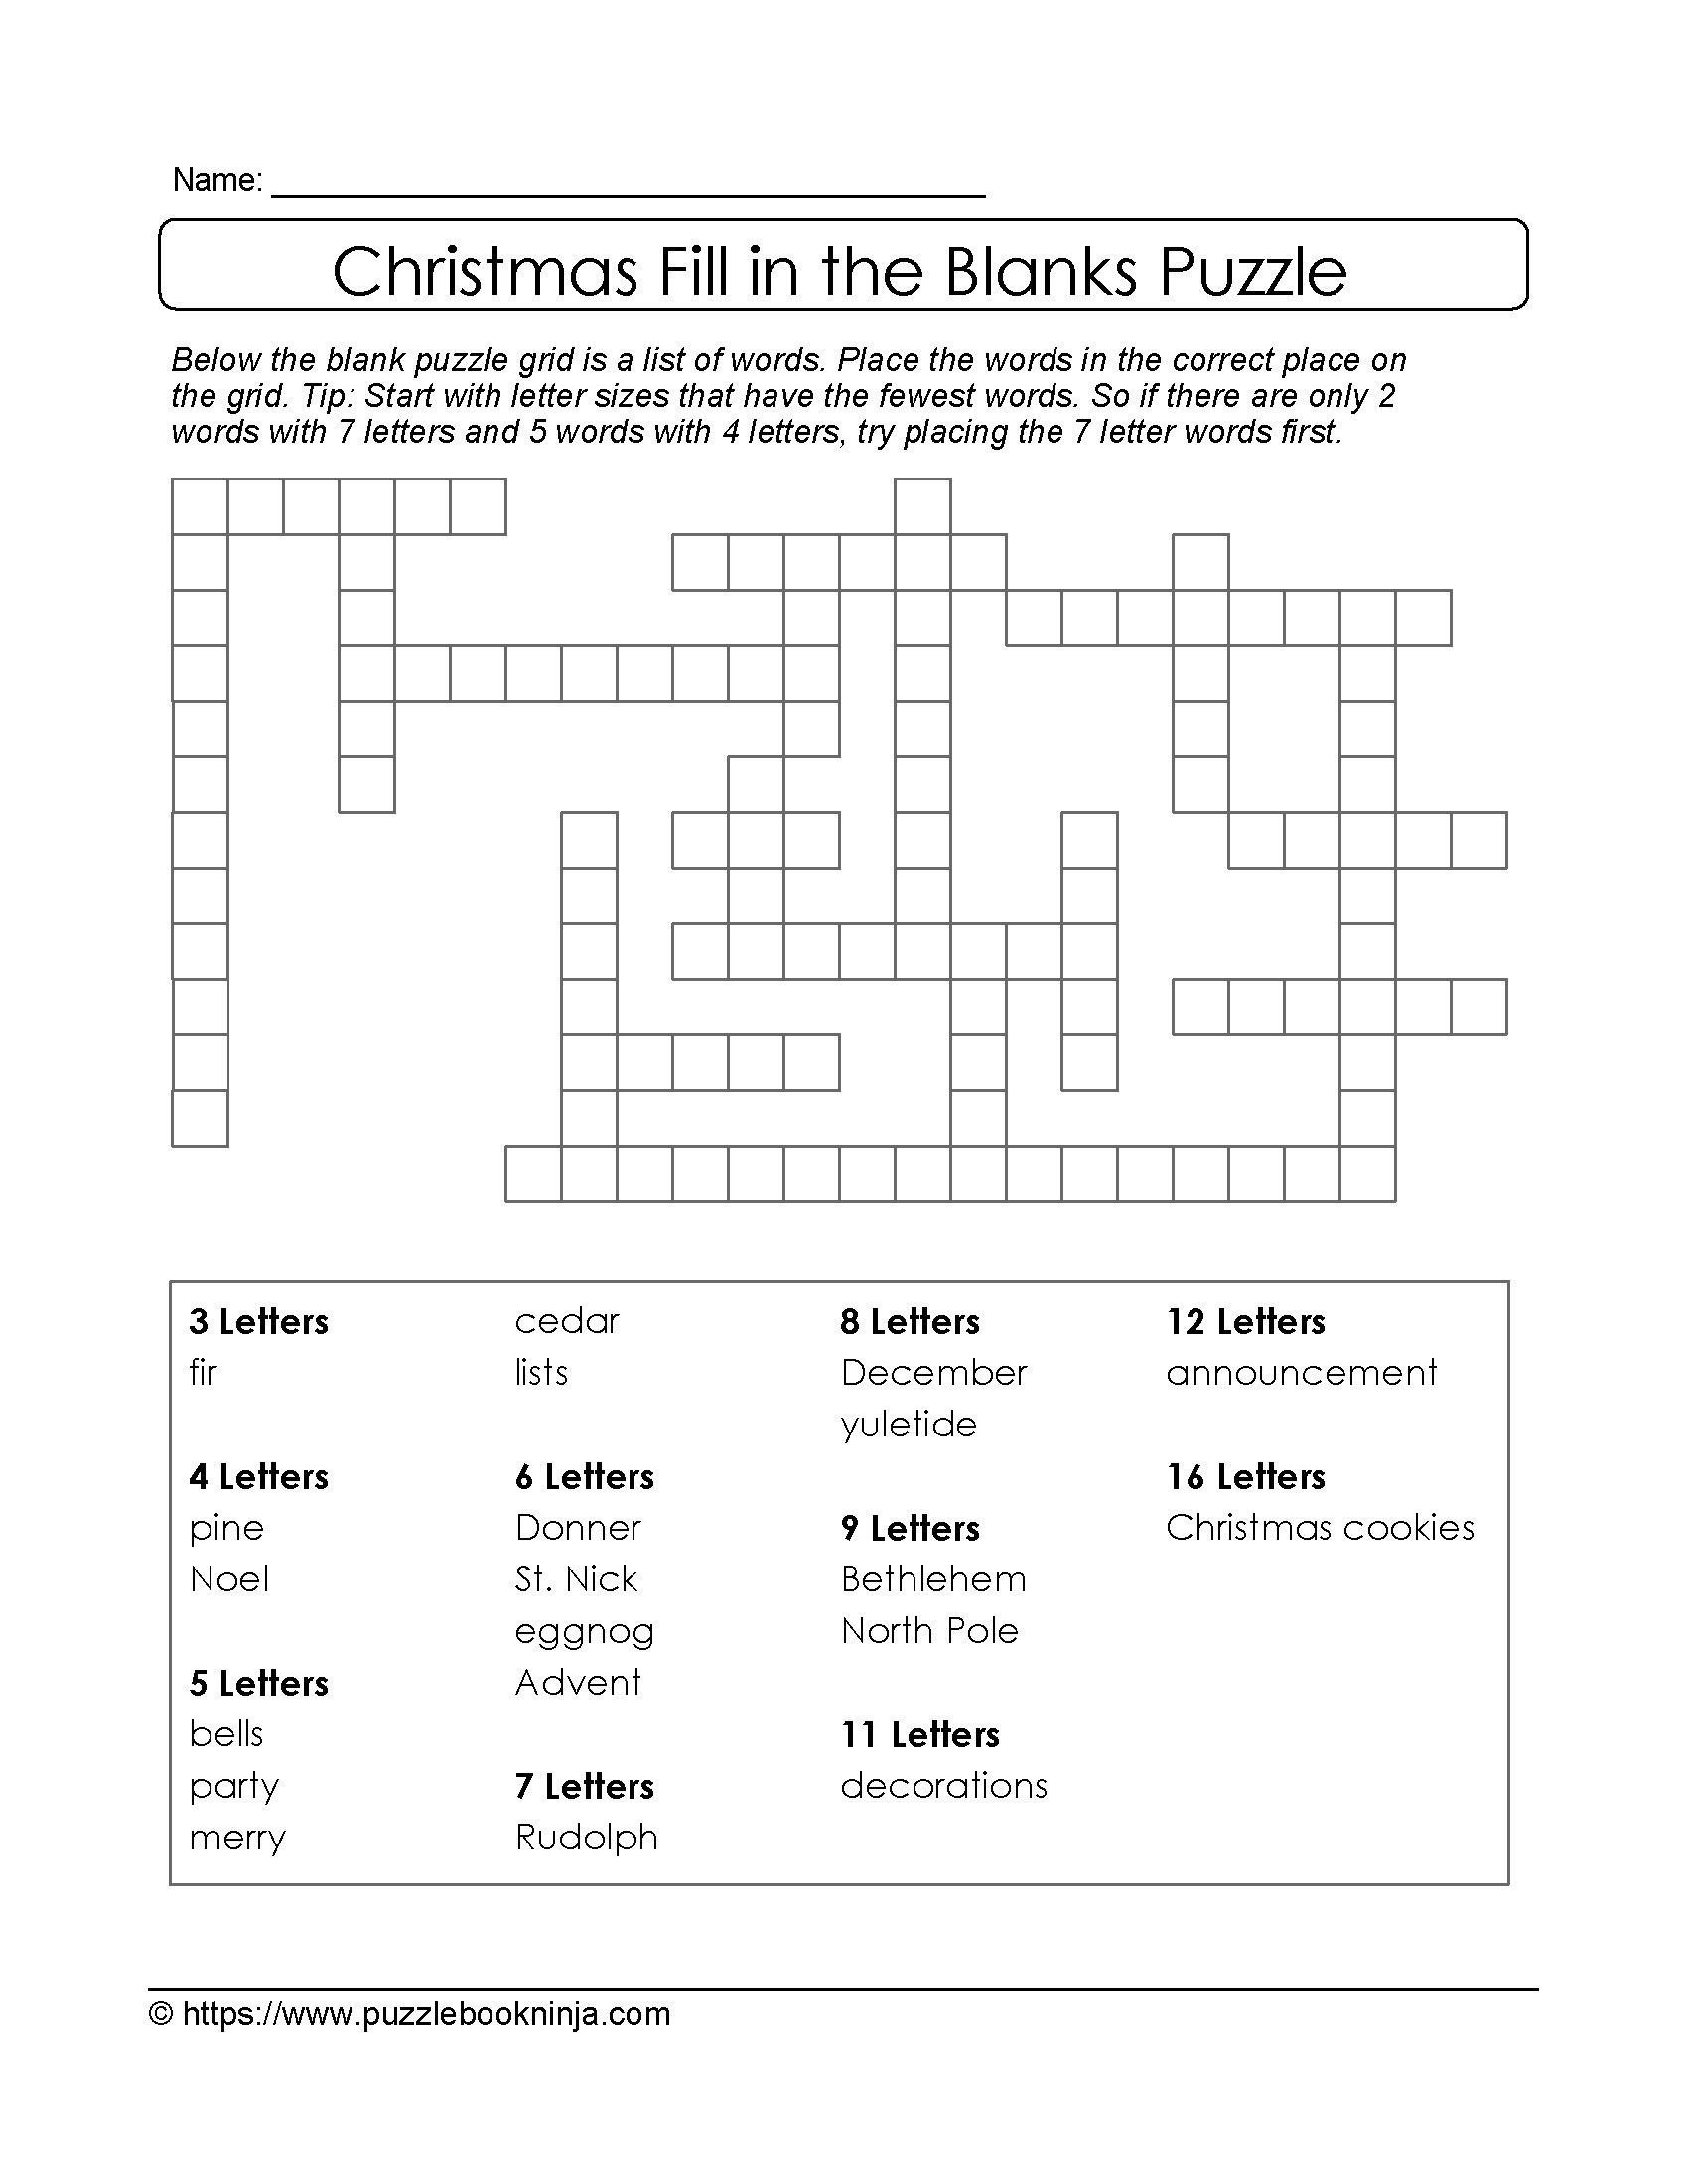 Crossword Puzzle Gallery Christmas Printable Free Fill In The Blanks Of Blank